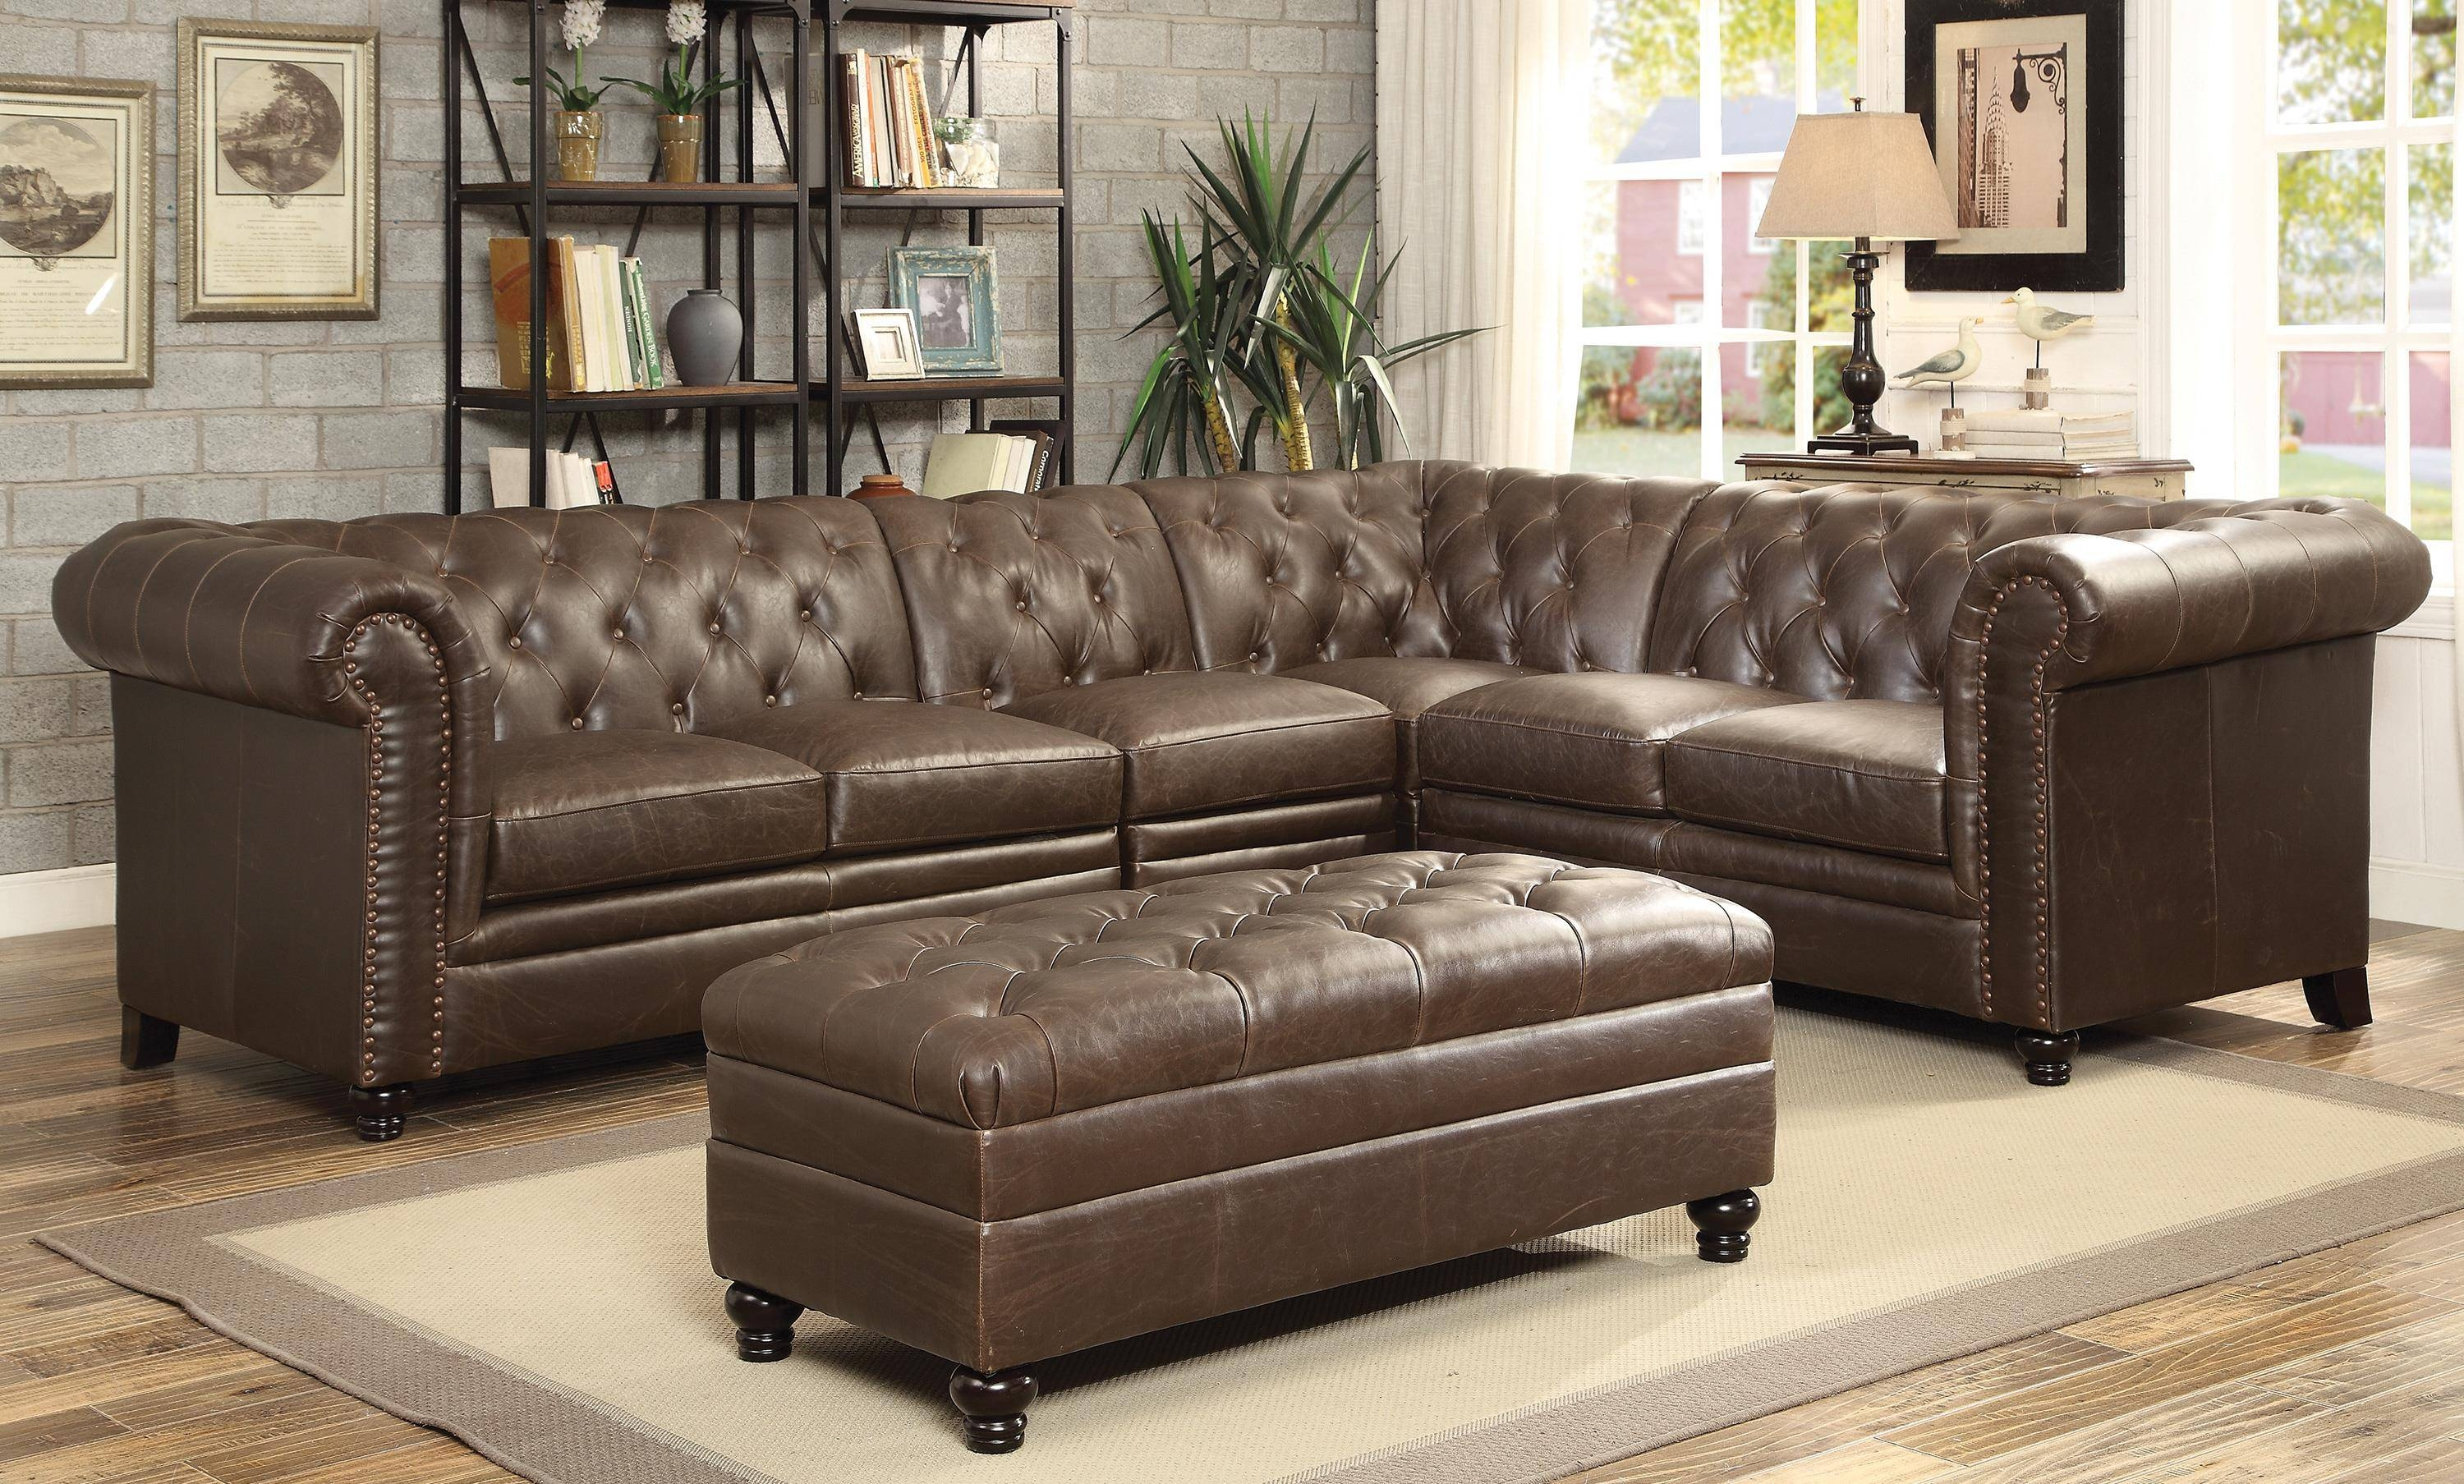 Coaster Roy Button-Tufted Sectional Sofa - Coaster Fine Furniture with Coasters Sofas (Image 11 of 15)